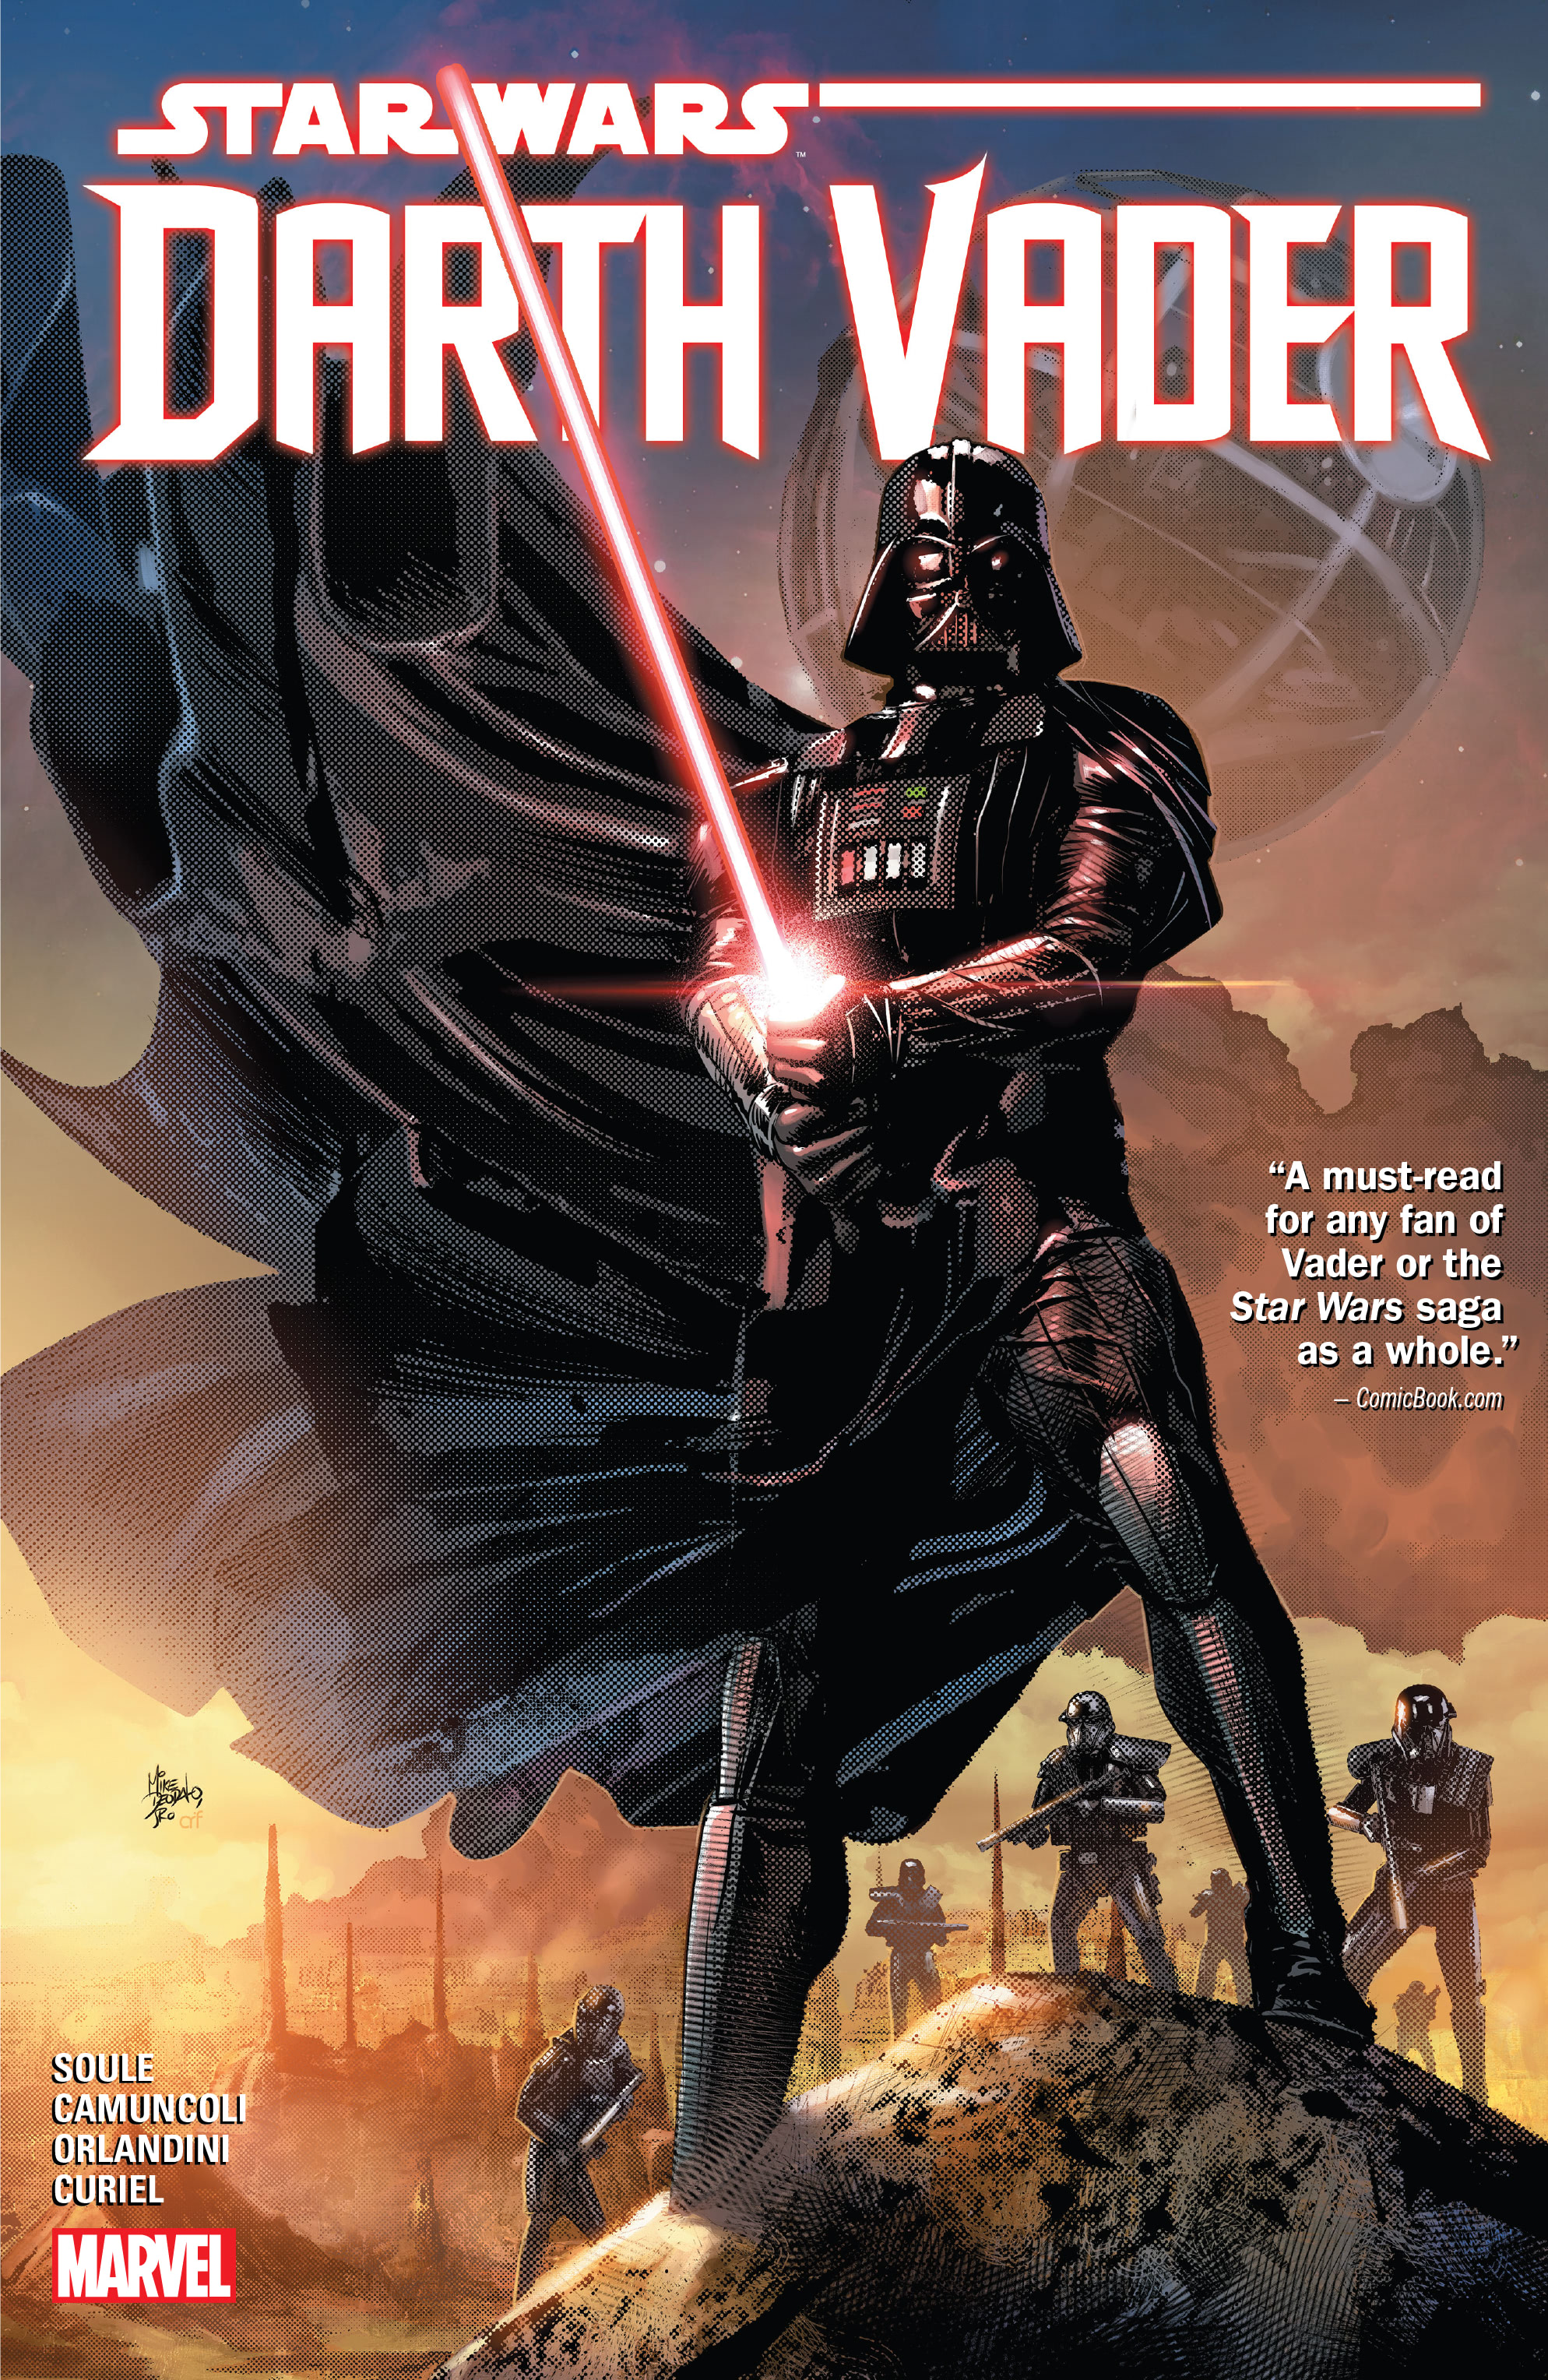 Darth Vader: Dark Lord of the Sith Volume 2 (23.06.2020)